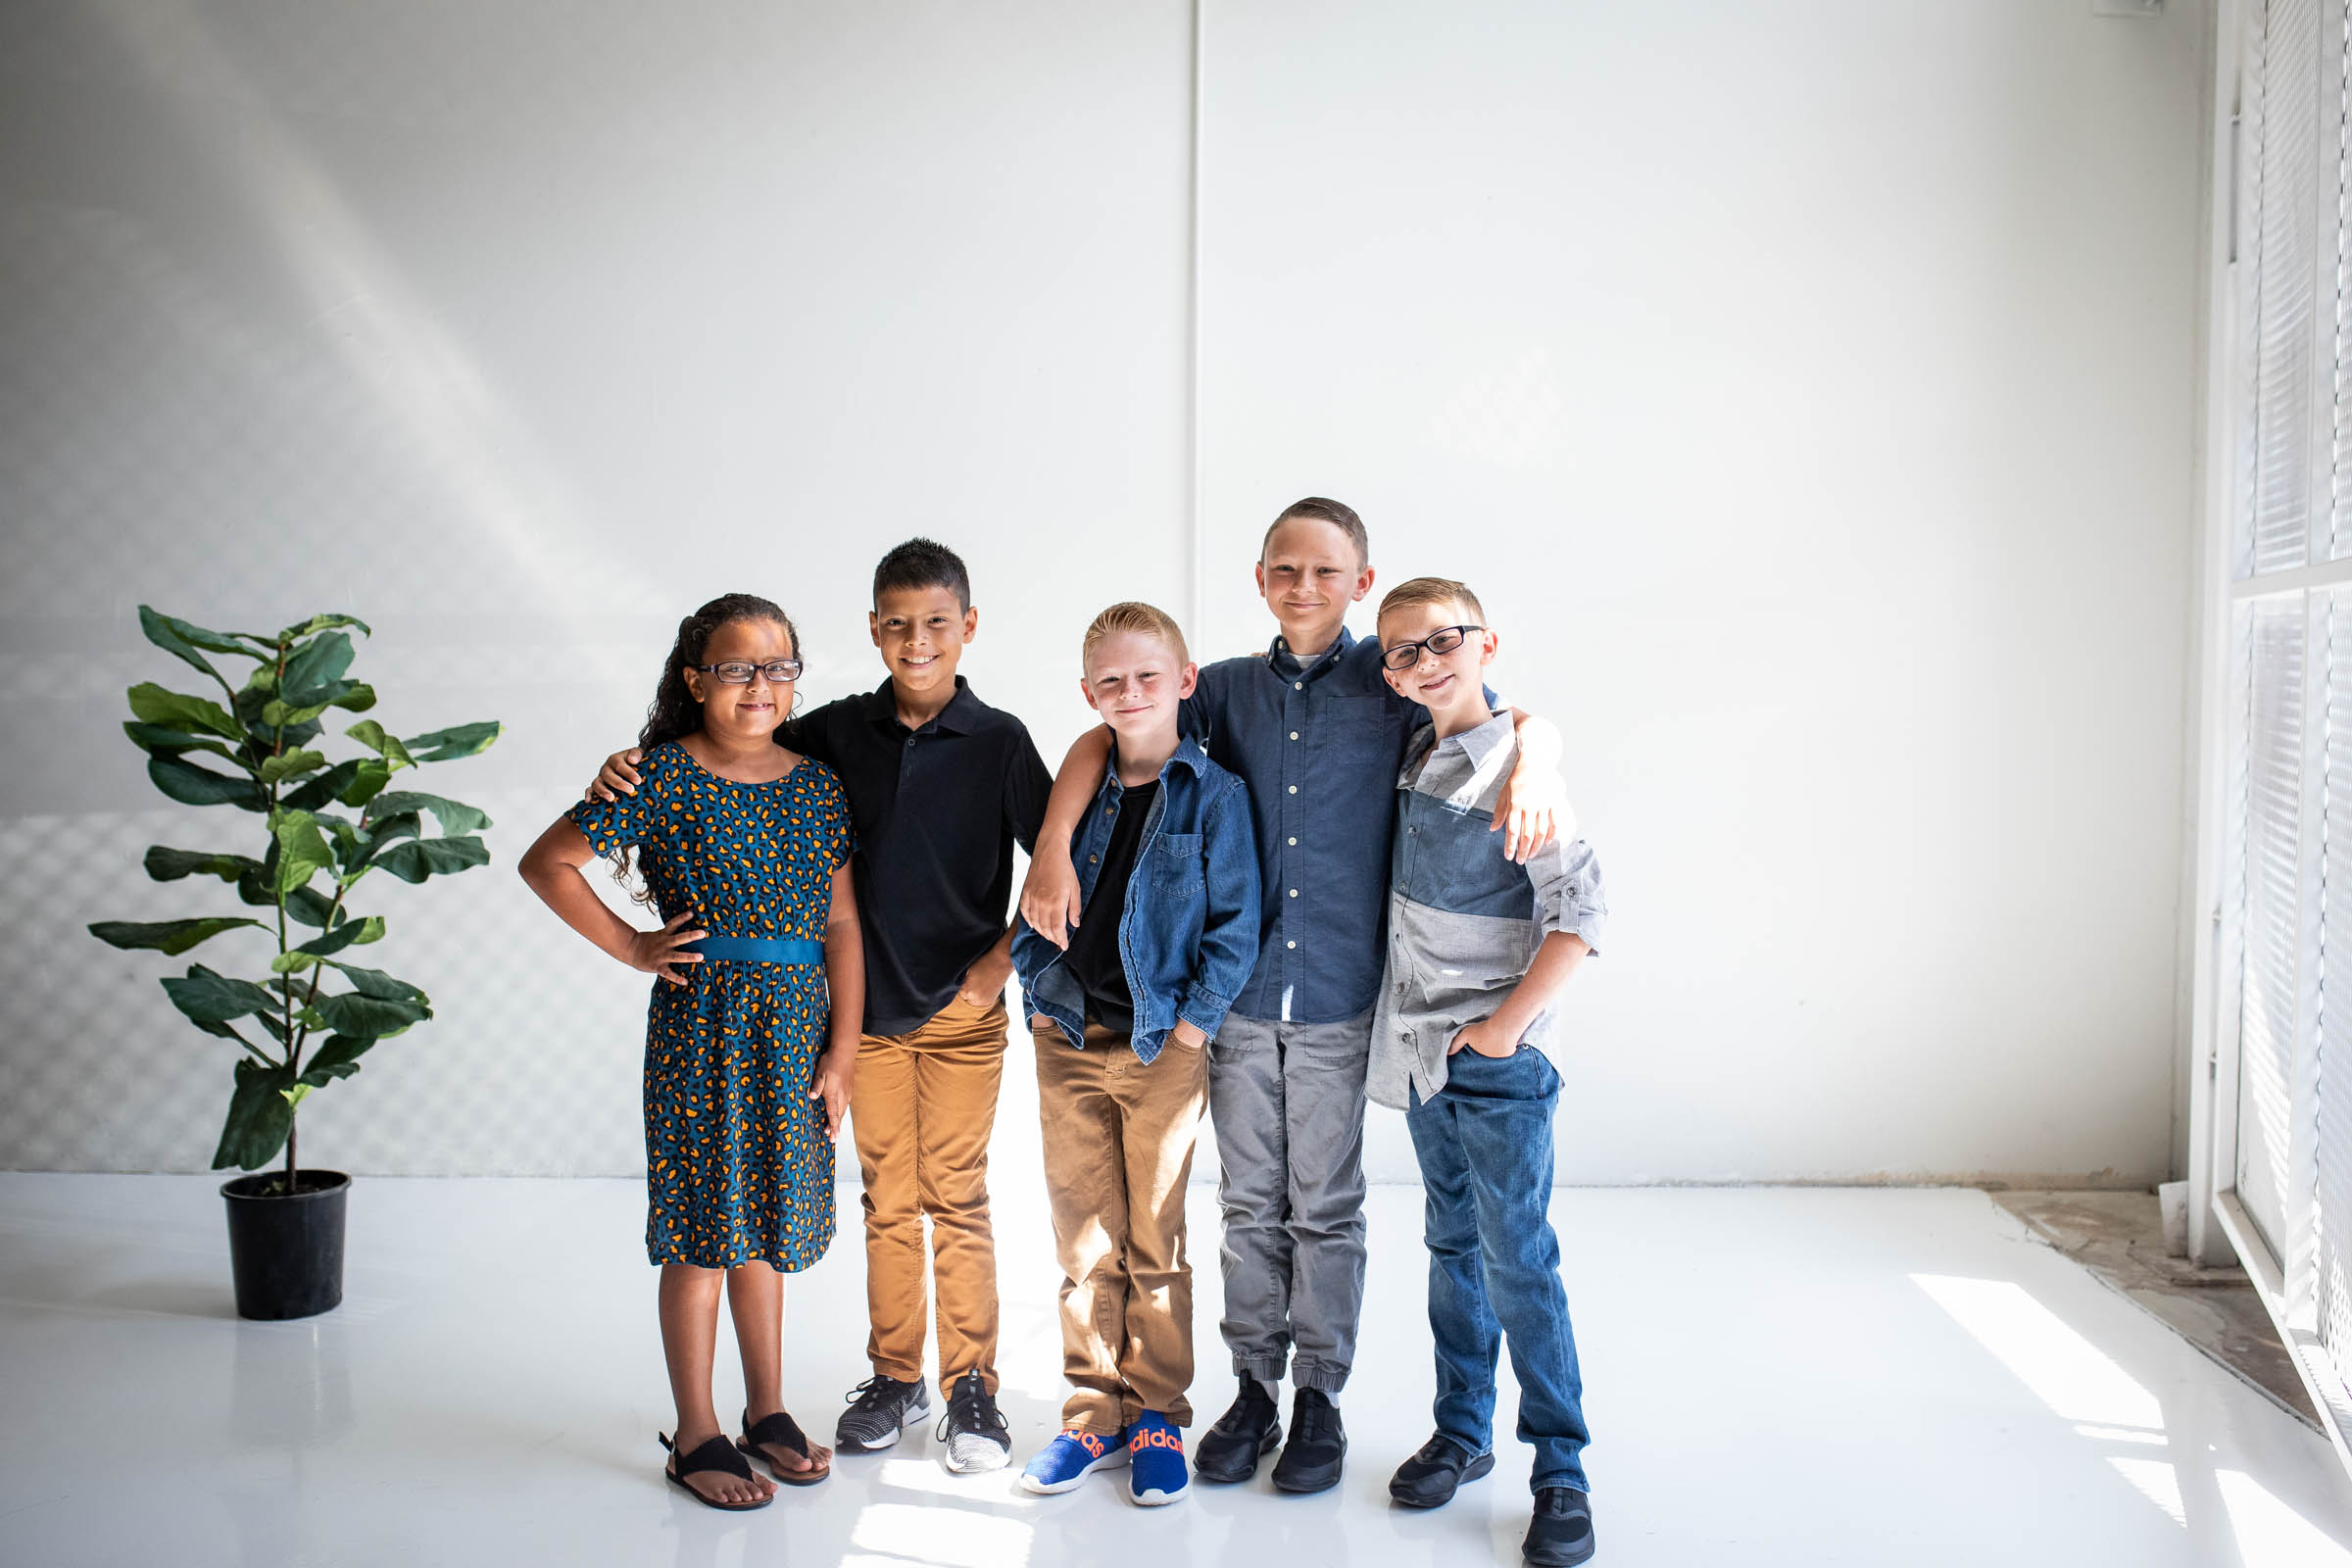 Waltrip Family- A Foster Care Story